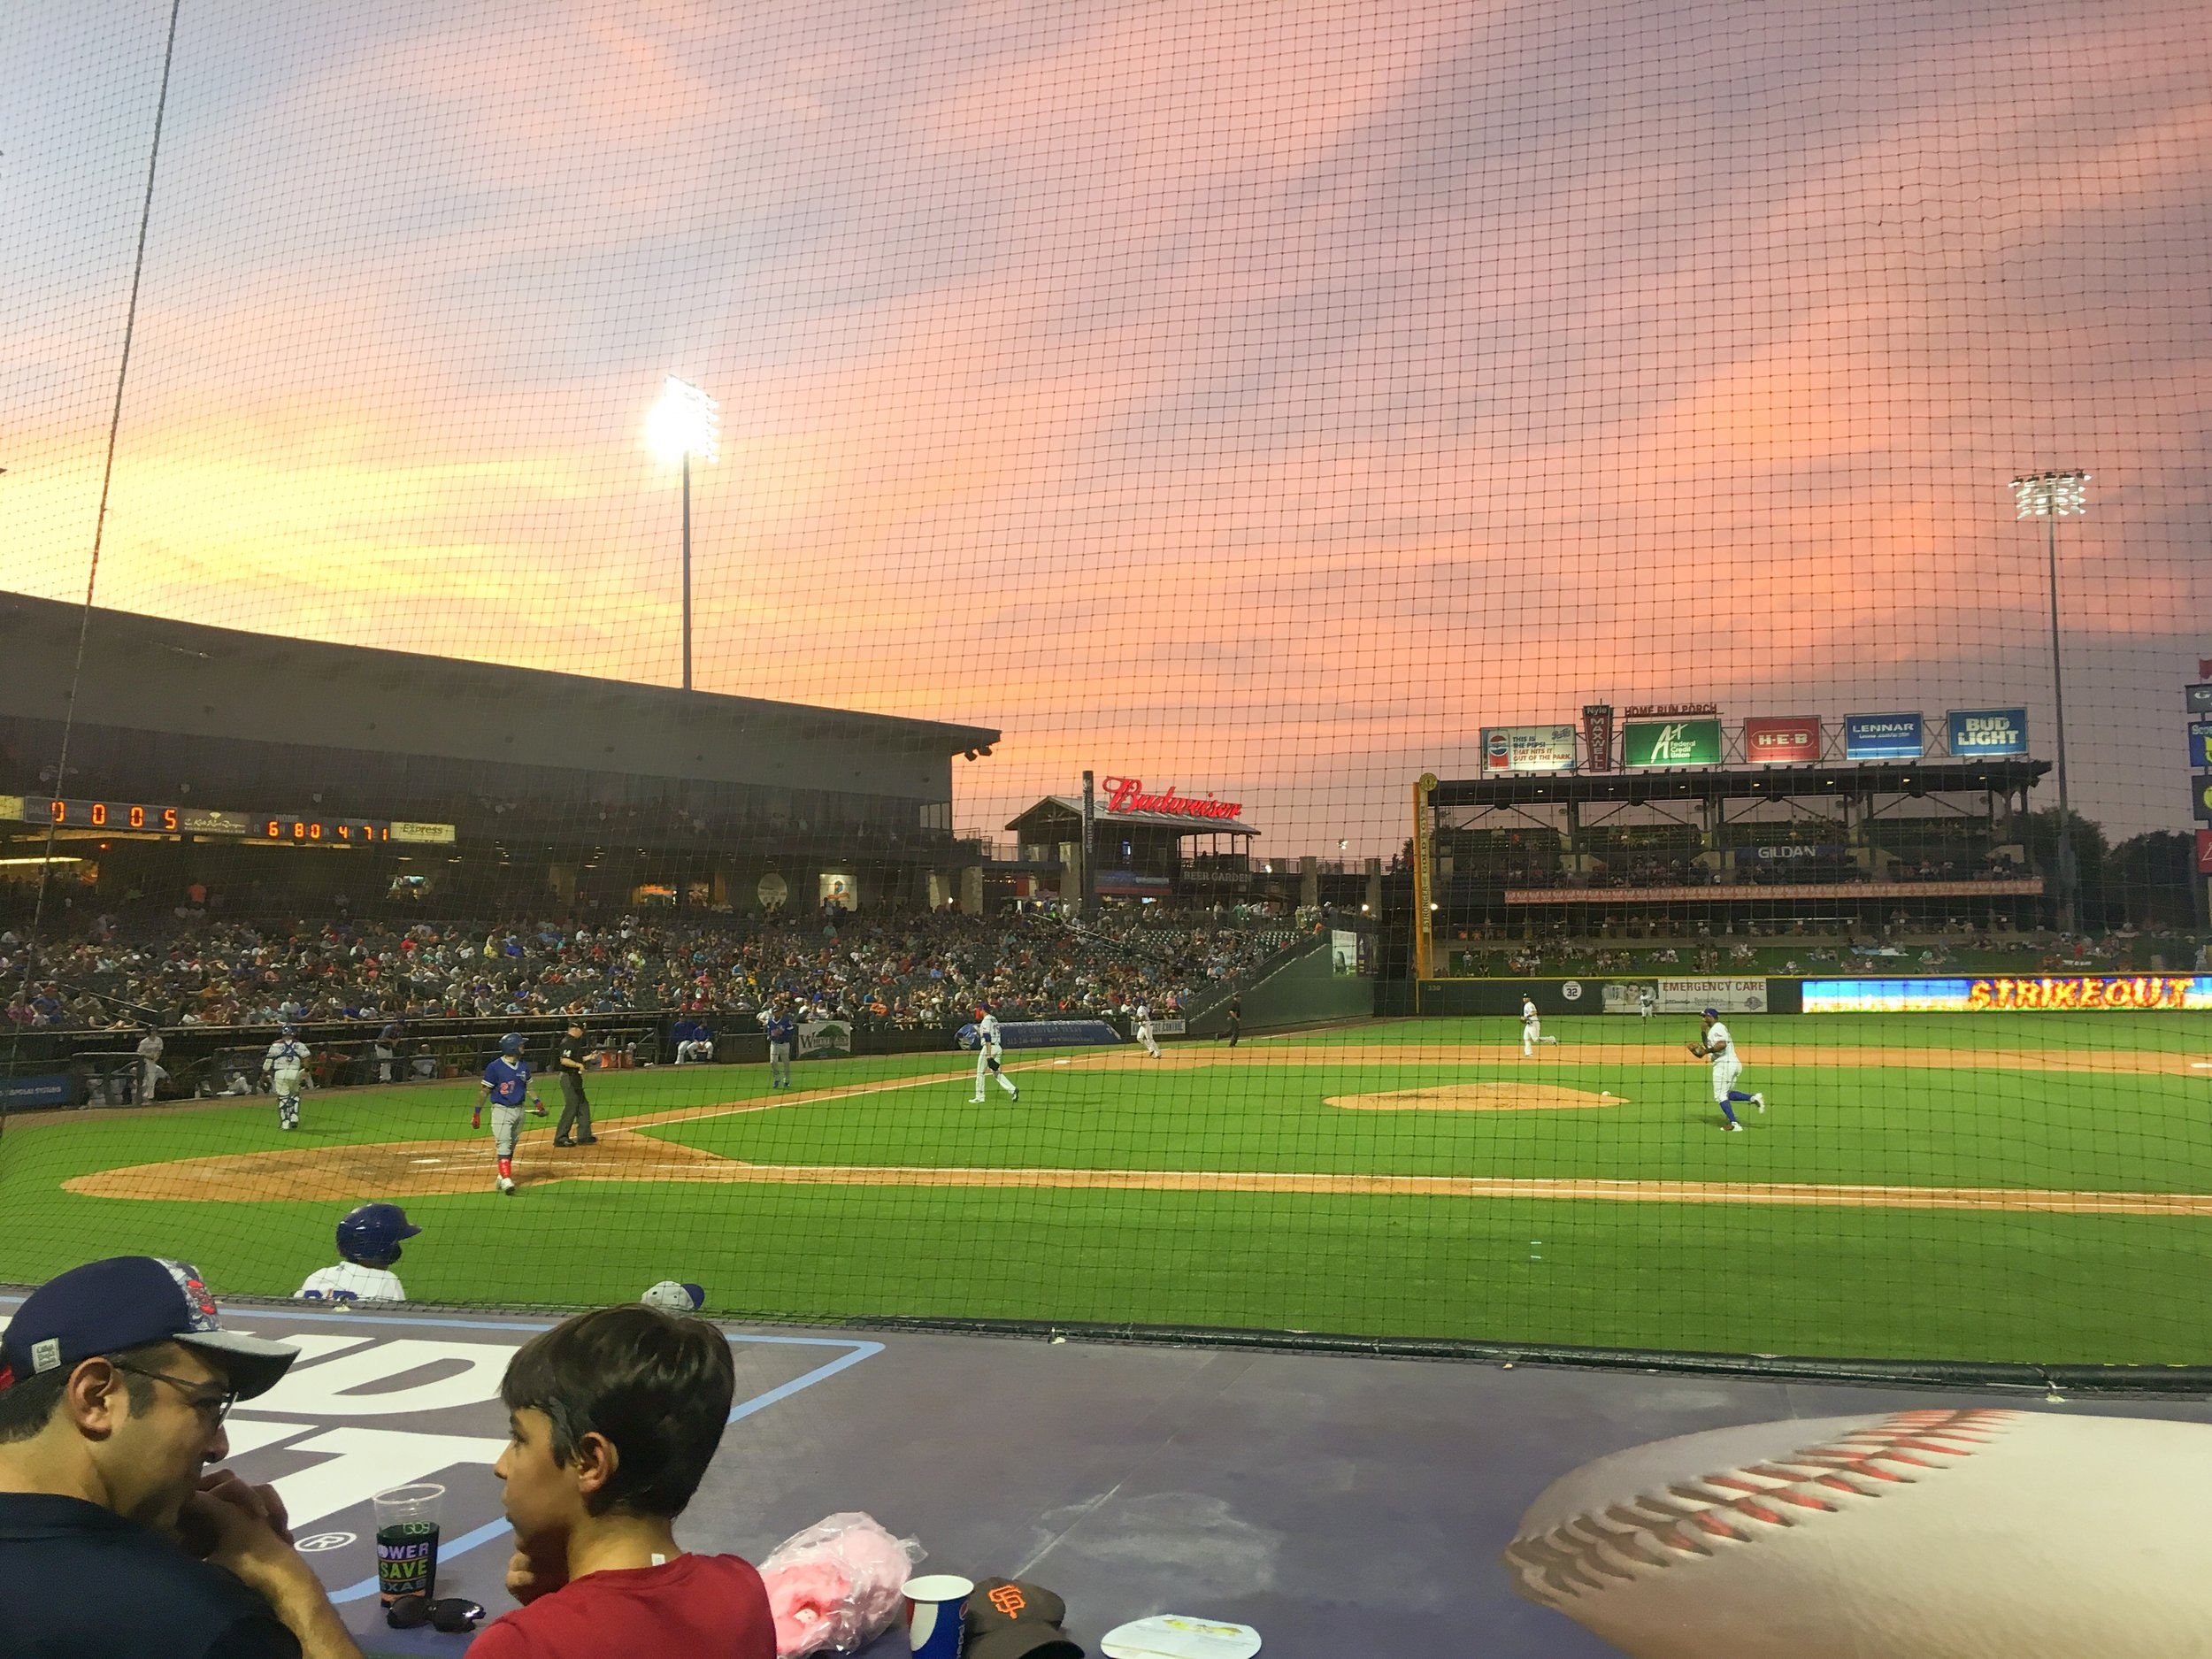 15. Take Yourself to a Ball Game - Hit up the Dell Diamond stadium to catch the Express.